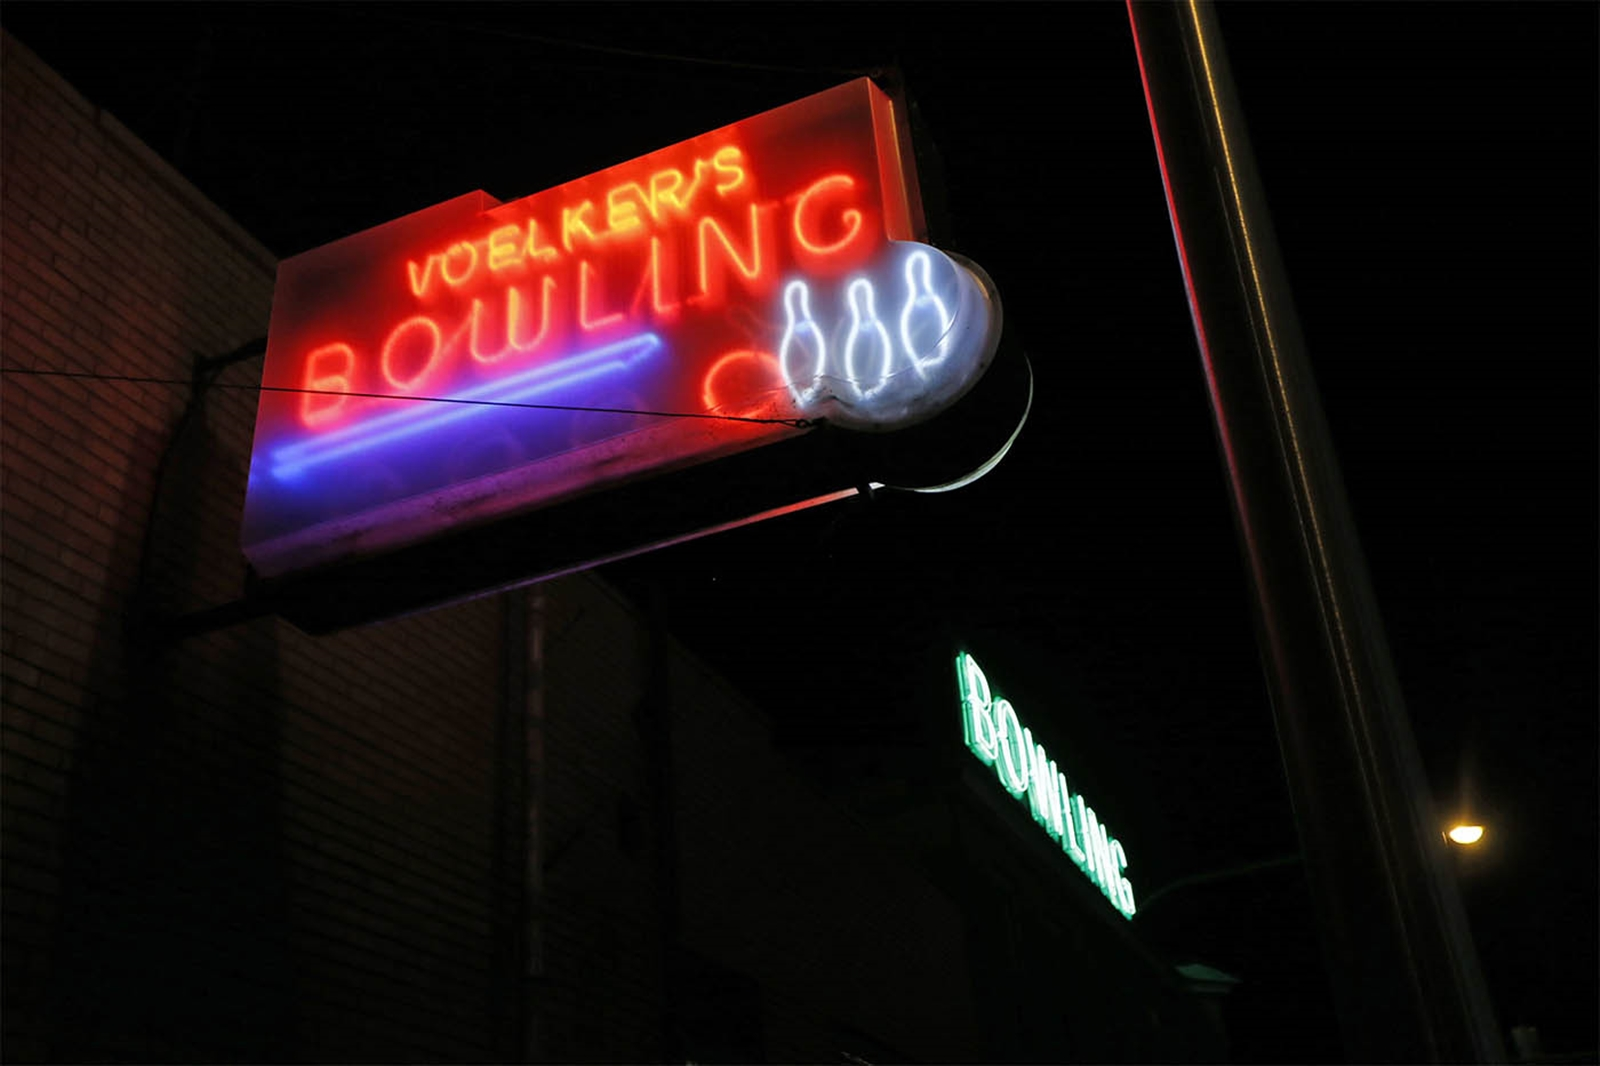 The exterior of Voelkeru2019s Lanes, which has been an entertainment hotbed in Buffalo since 1892. The Elmwood Avenue landmark is known for its colorful, flashing neon sign, vintage barroom and the sights and sounds of bowling.